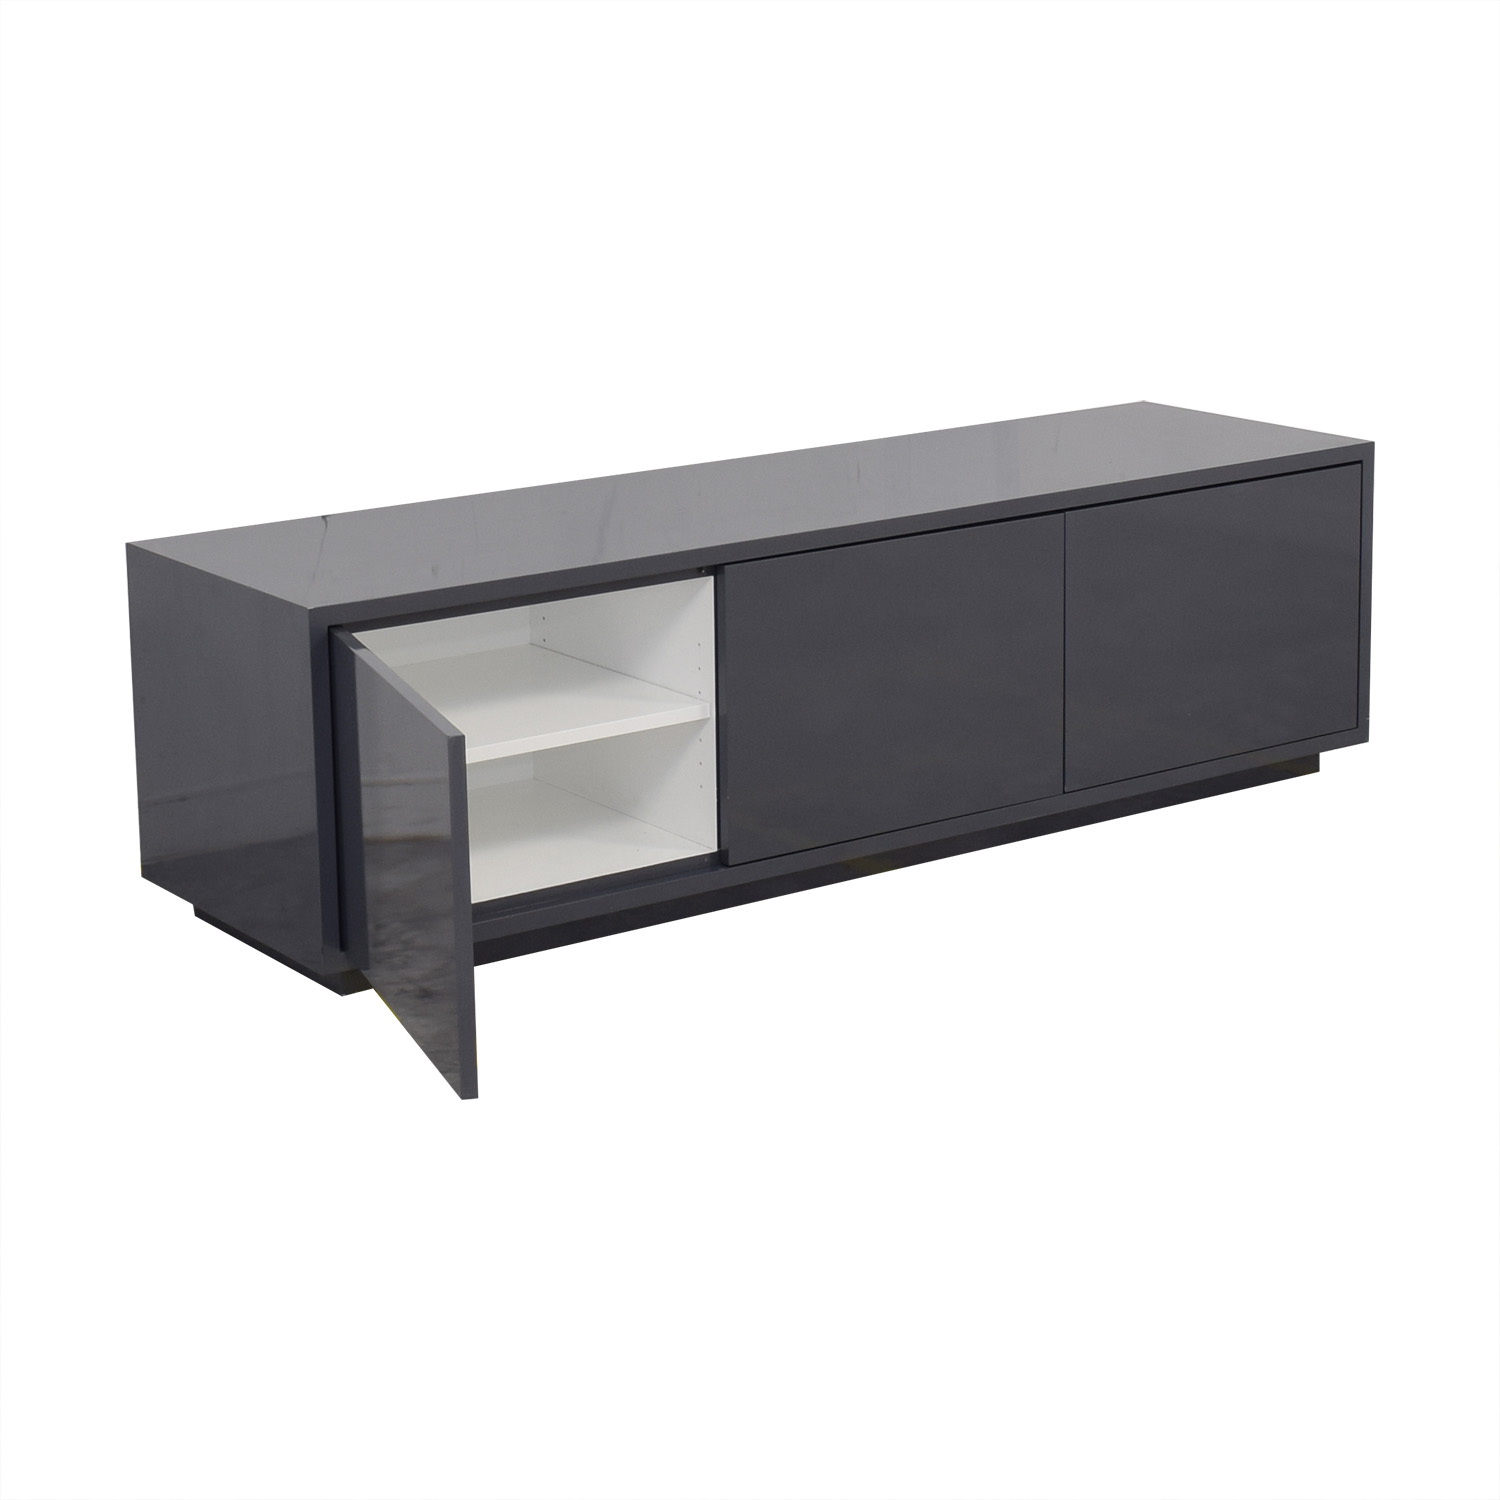 Raymour & Flanigan Raymour & Flanigan Triple Cabinet Credenza on sale